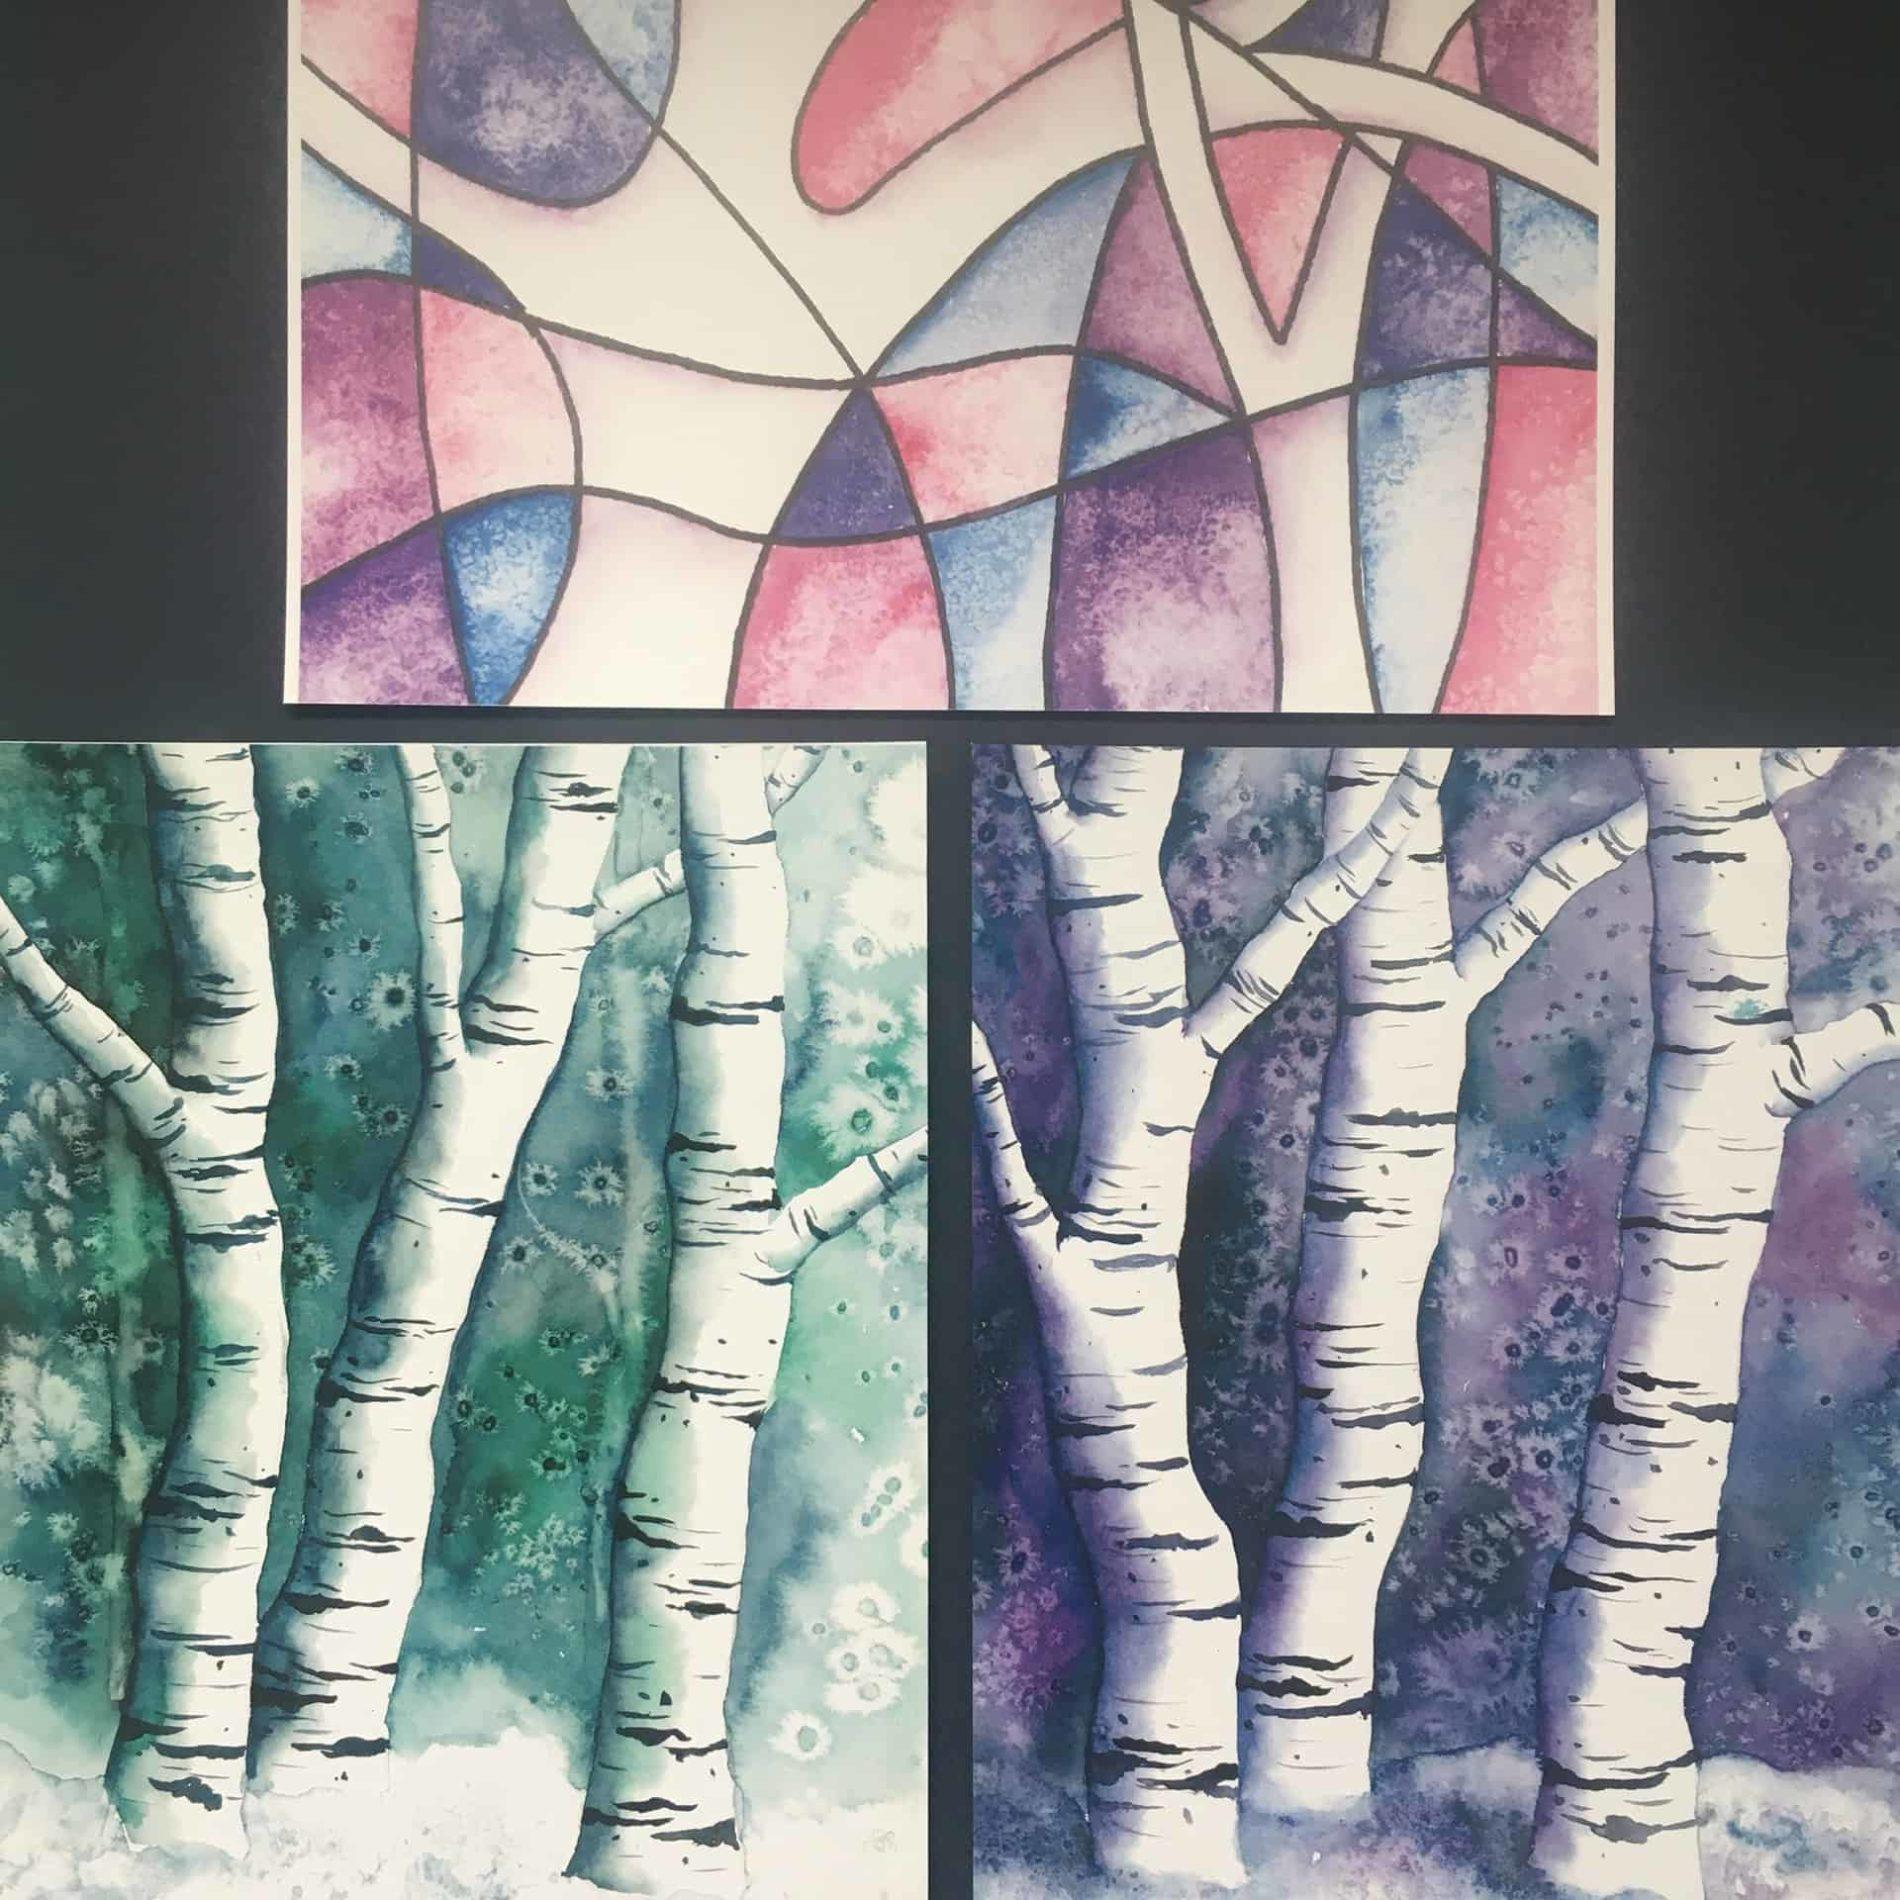 119198120 3238754512874504 8346696287403560550 o Ptkd7h.tmp  - Watercolour Workshop (Trees) – October 18th 2020